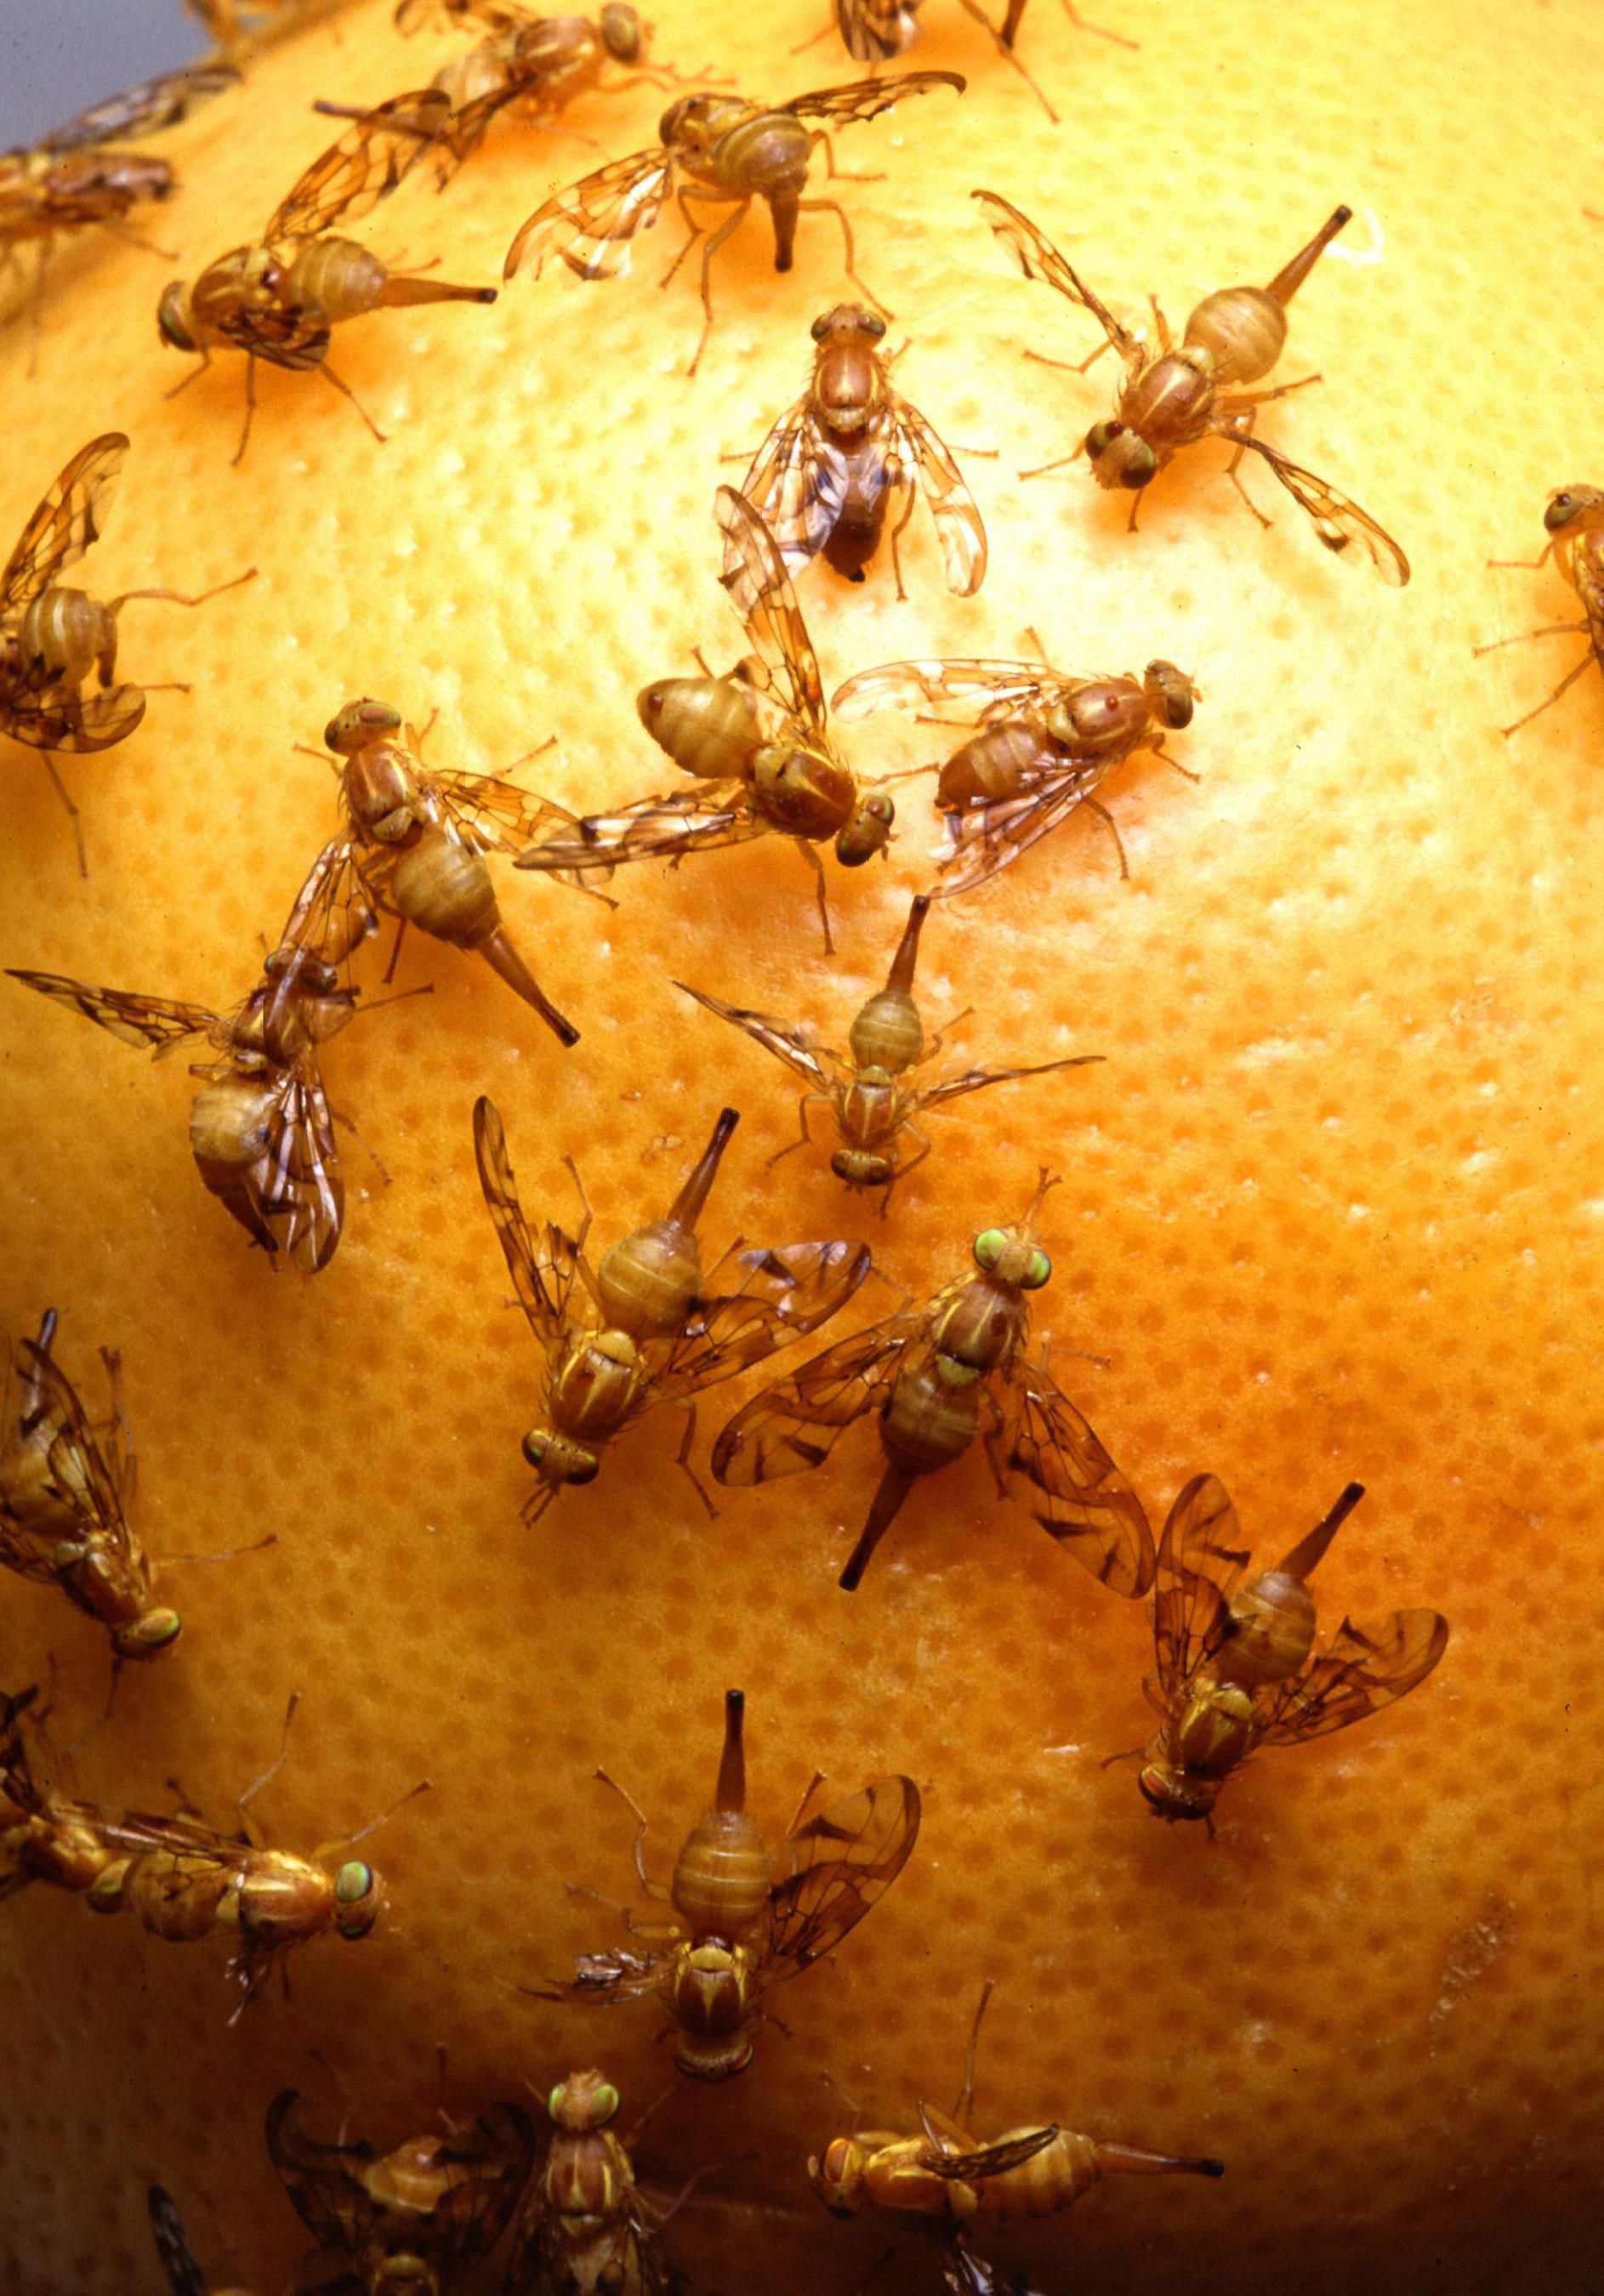 File:Mexican fruit flies.jpg - Wikimedia Commons